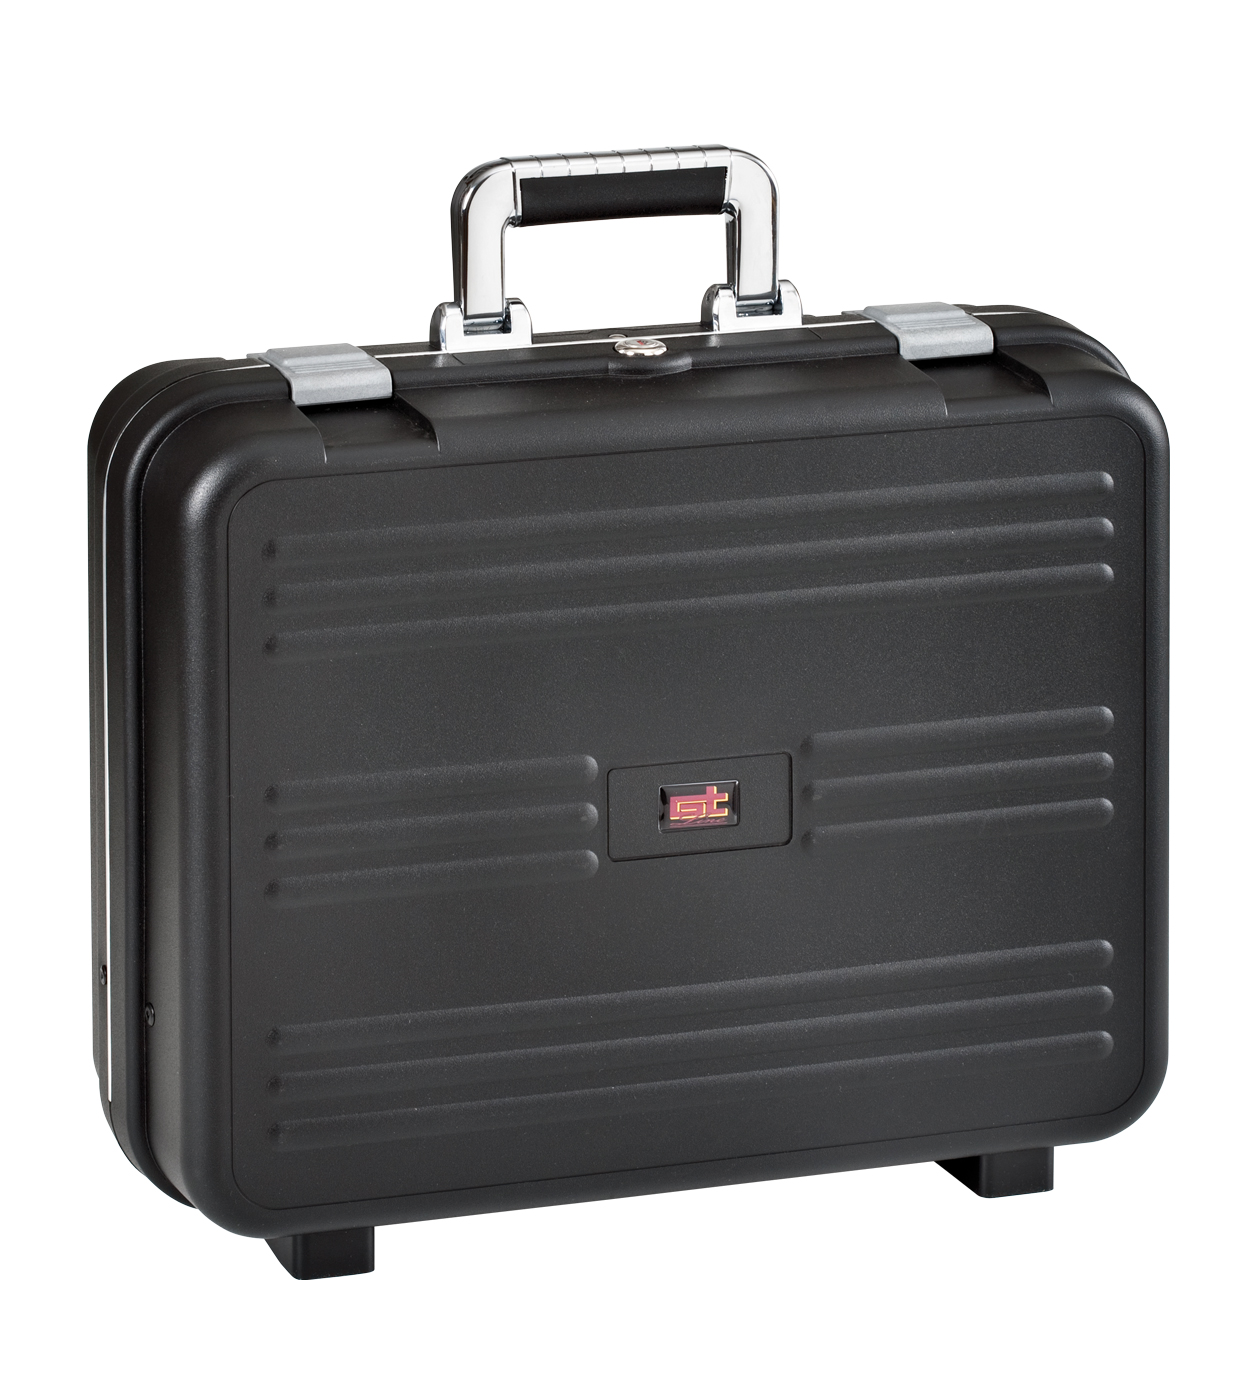 GT TOOL CASE (WITHOUT TOOLS) - ITALY